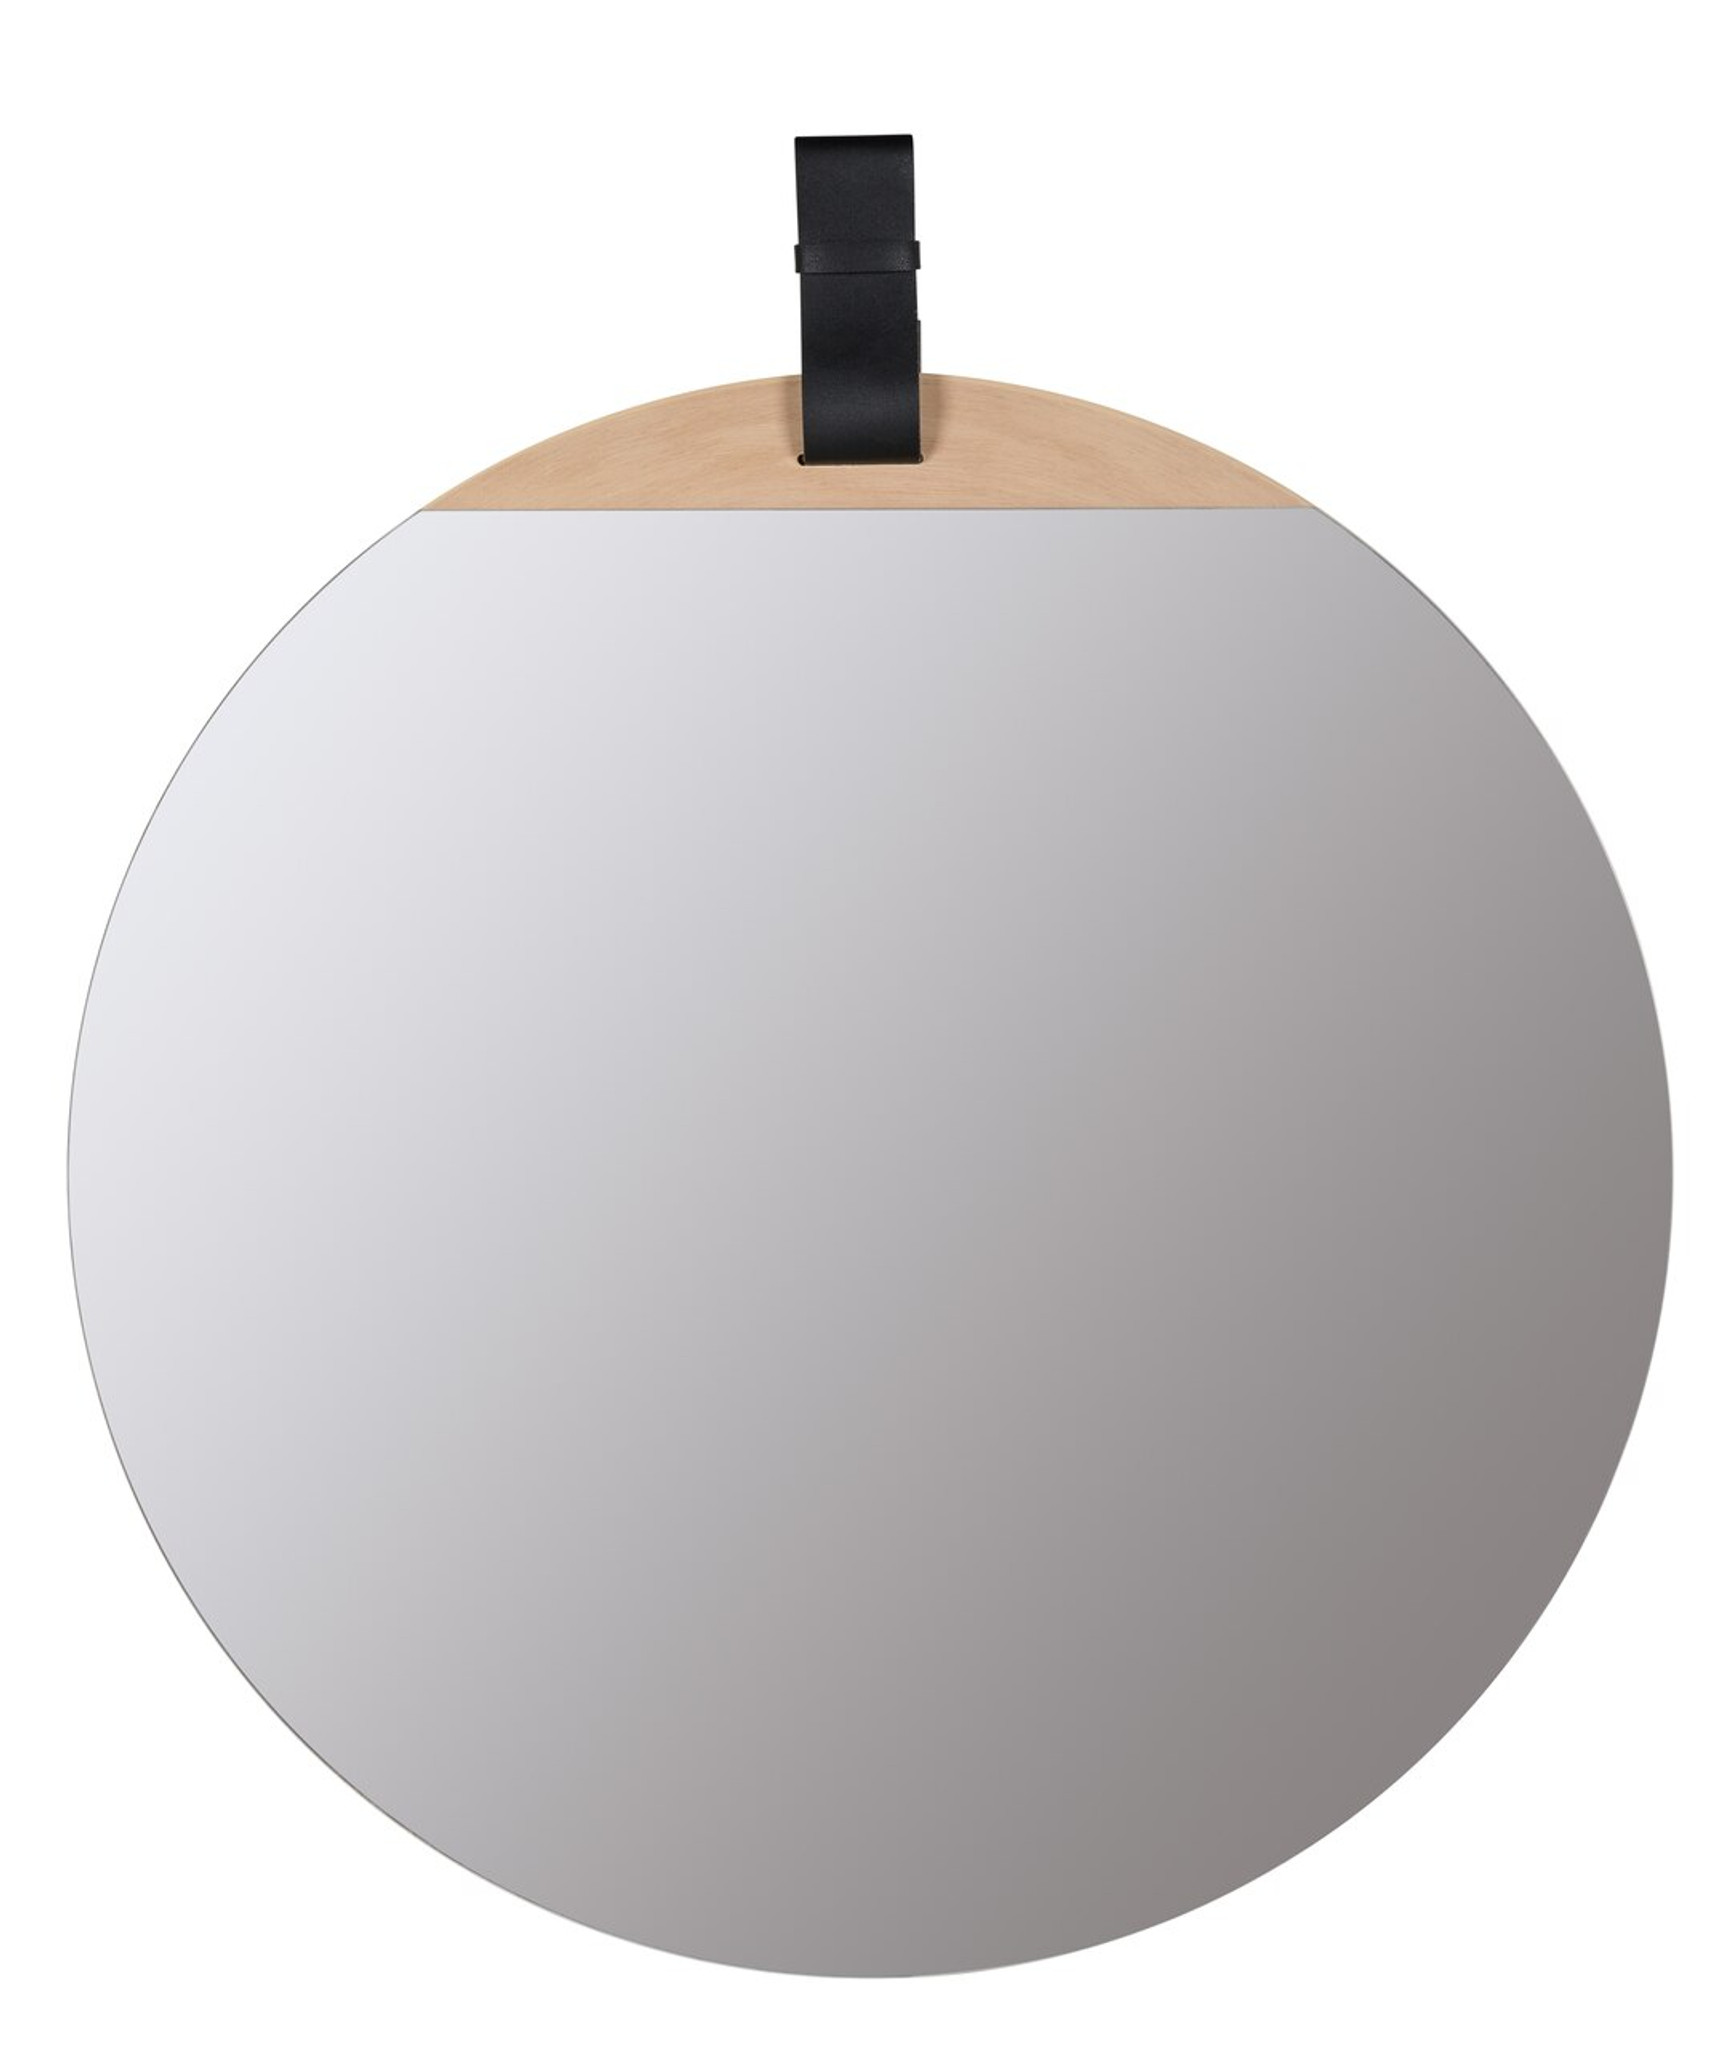 round mirror with strap leather detail wood frameless Heppner Wall Mirror